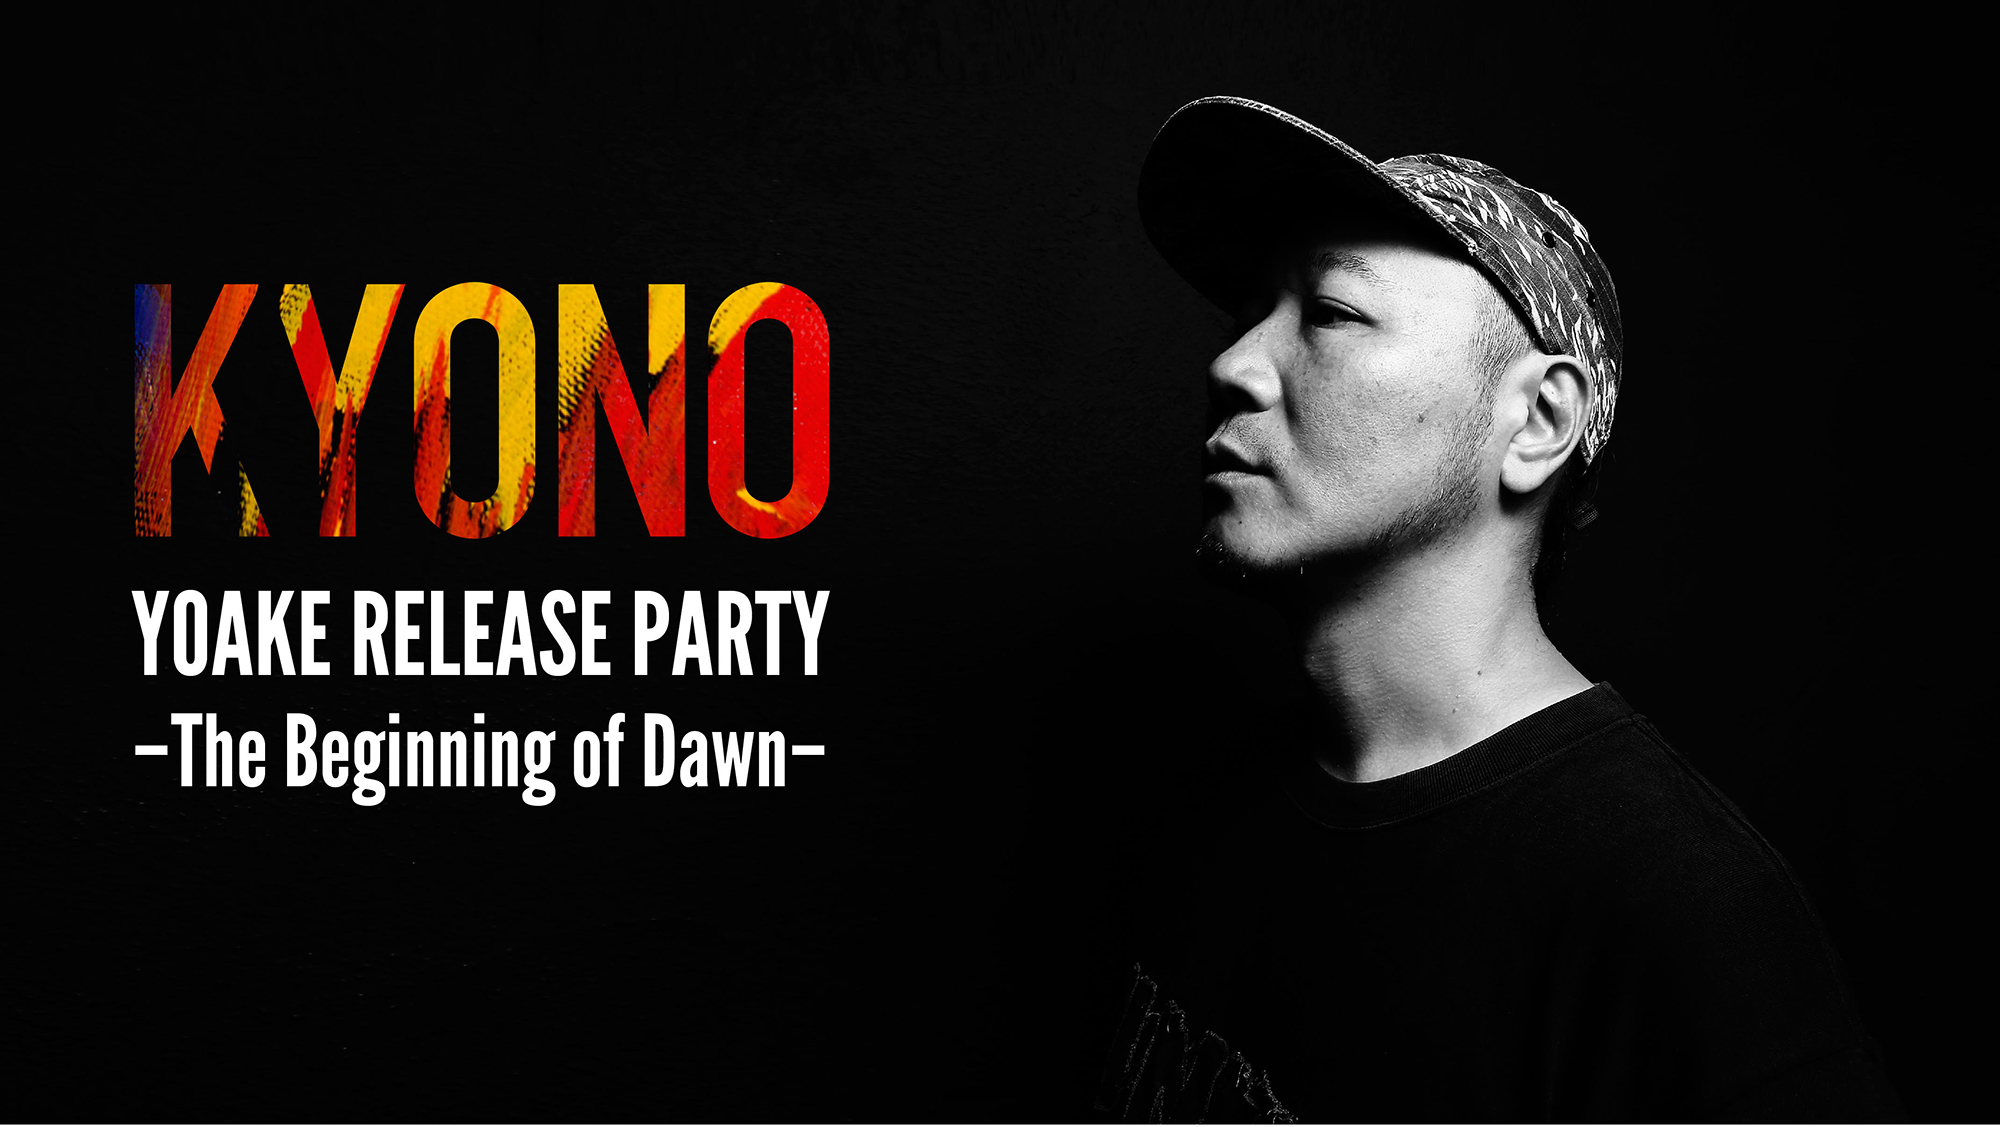 KYONO「YOAKE RELEASE PARTY –The beginning of dawn–」